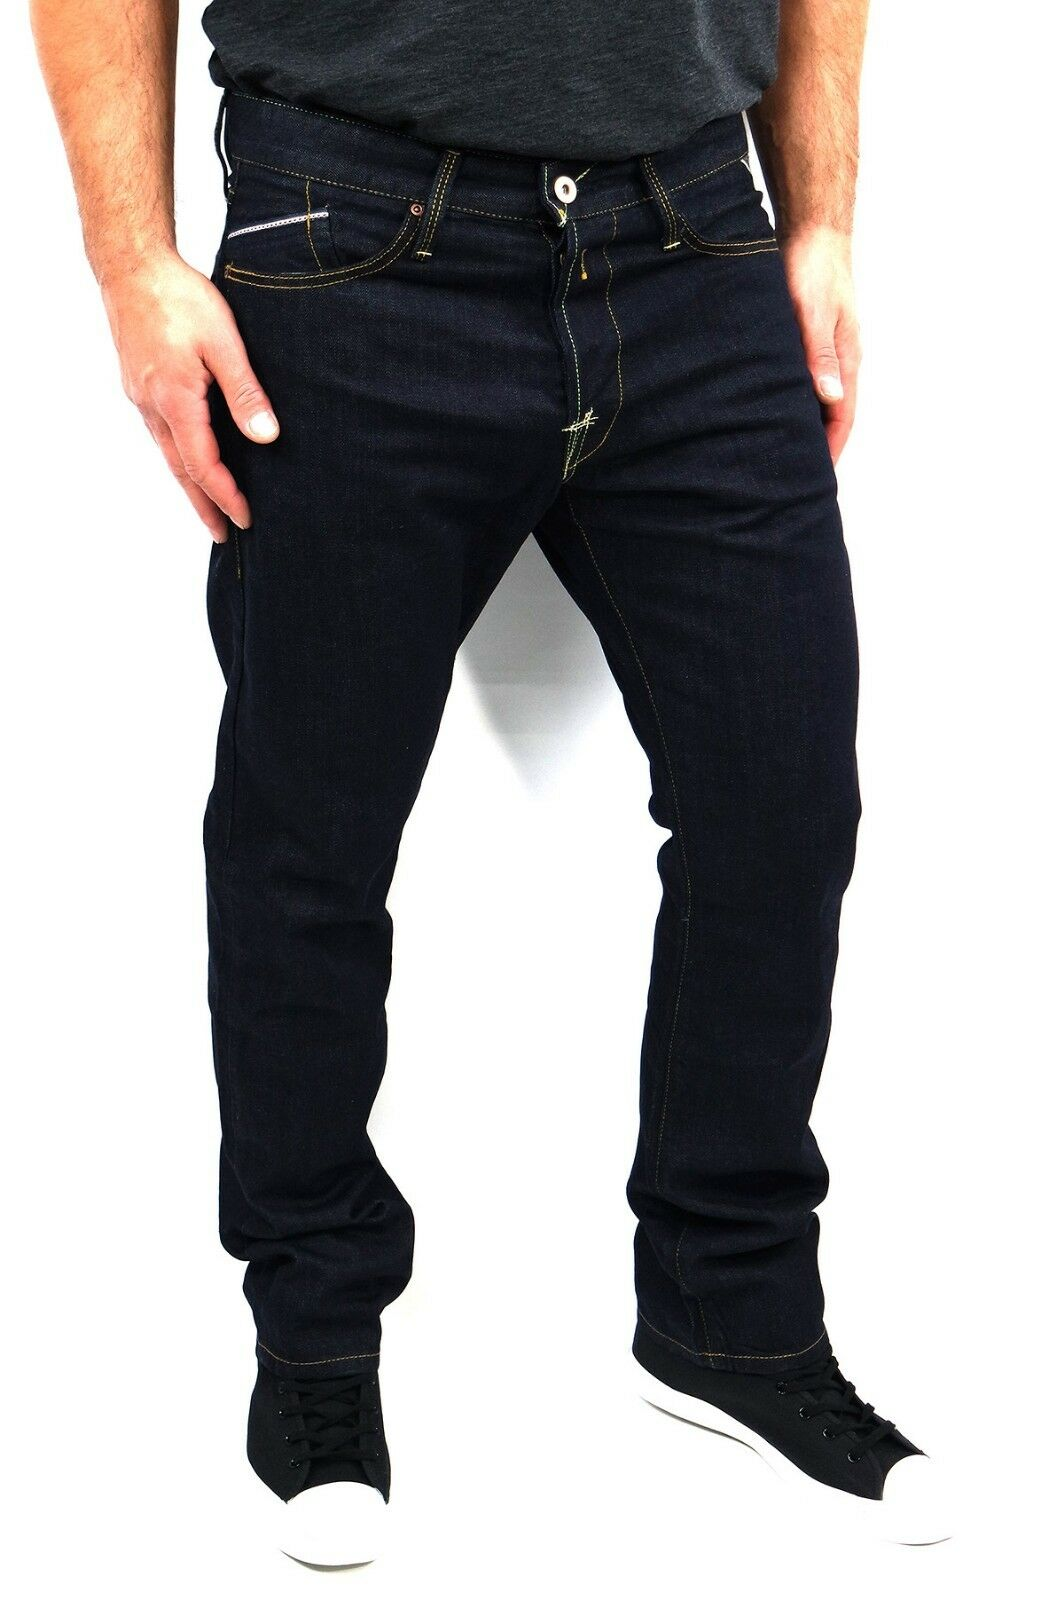 Replay Men Jeans Waitom W34 L32 M983 Dark Blau W11807007 Regular Slim Fit +New+